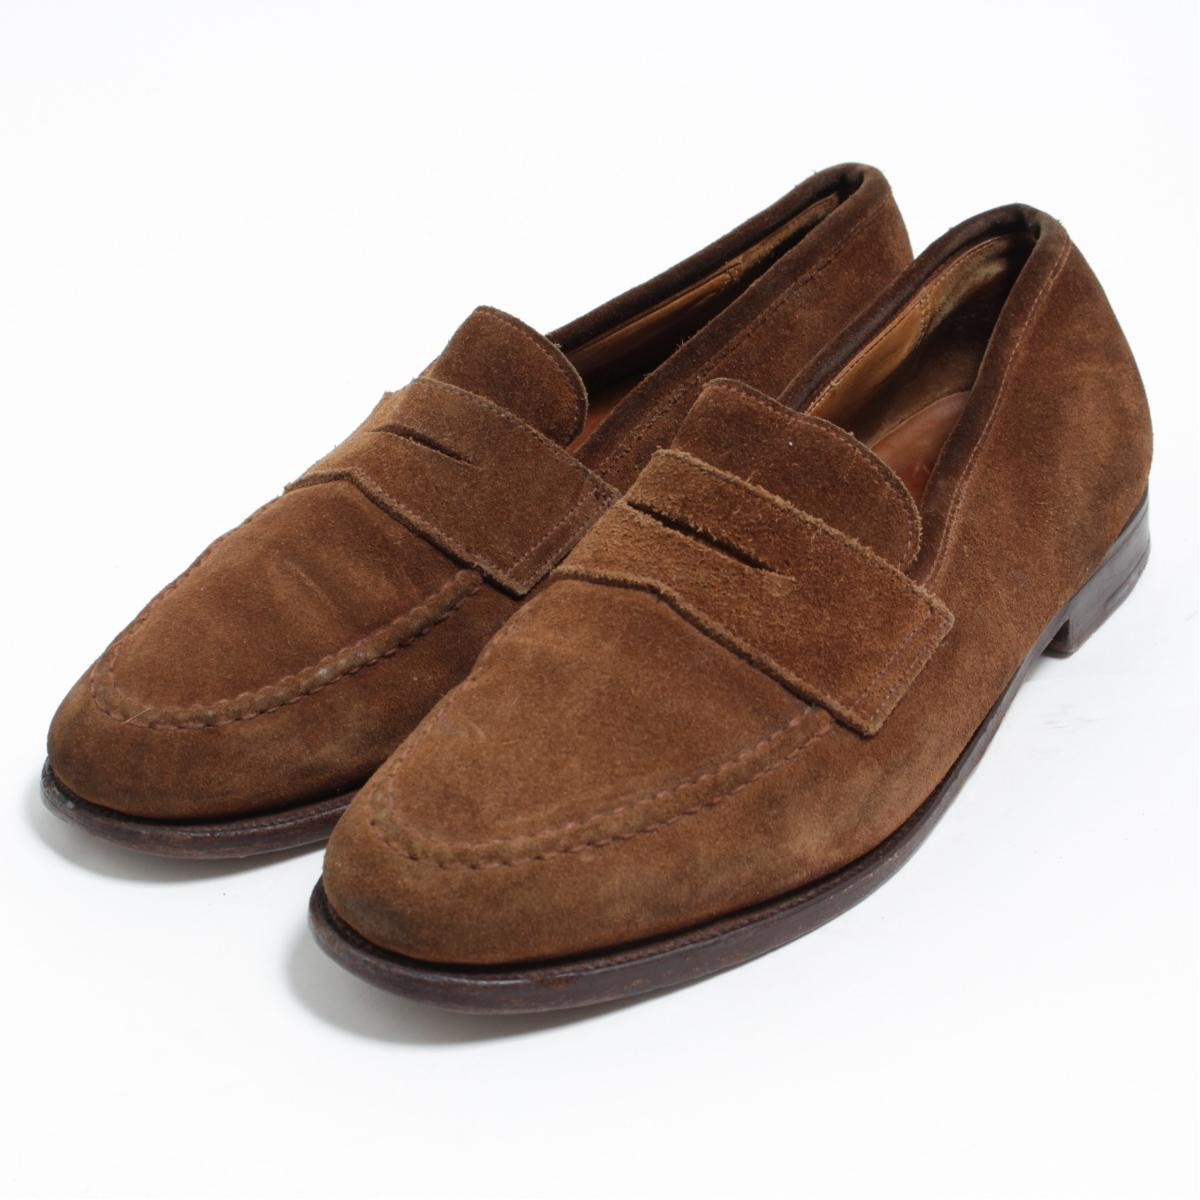 d0161a8cdf7f6 8.5D men 26.5cm  bon0275 made in the Brooks Brothers Brooks Brothers  PEAL Co penny loafers U.K.